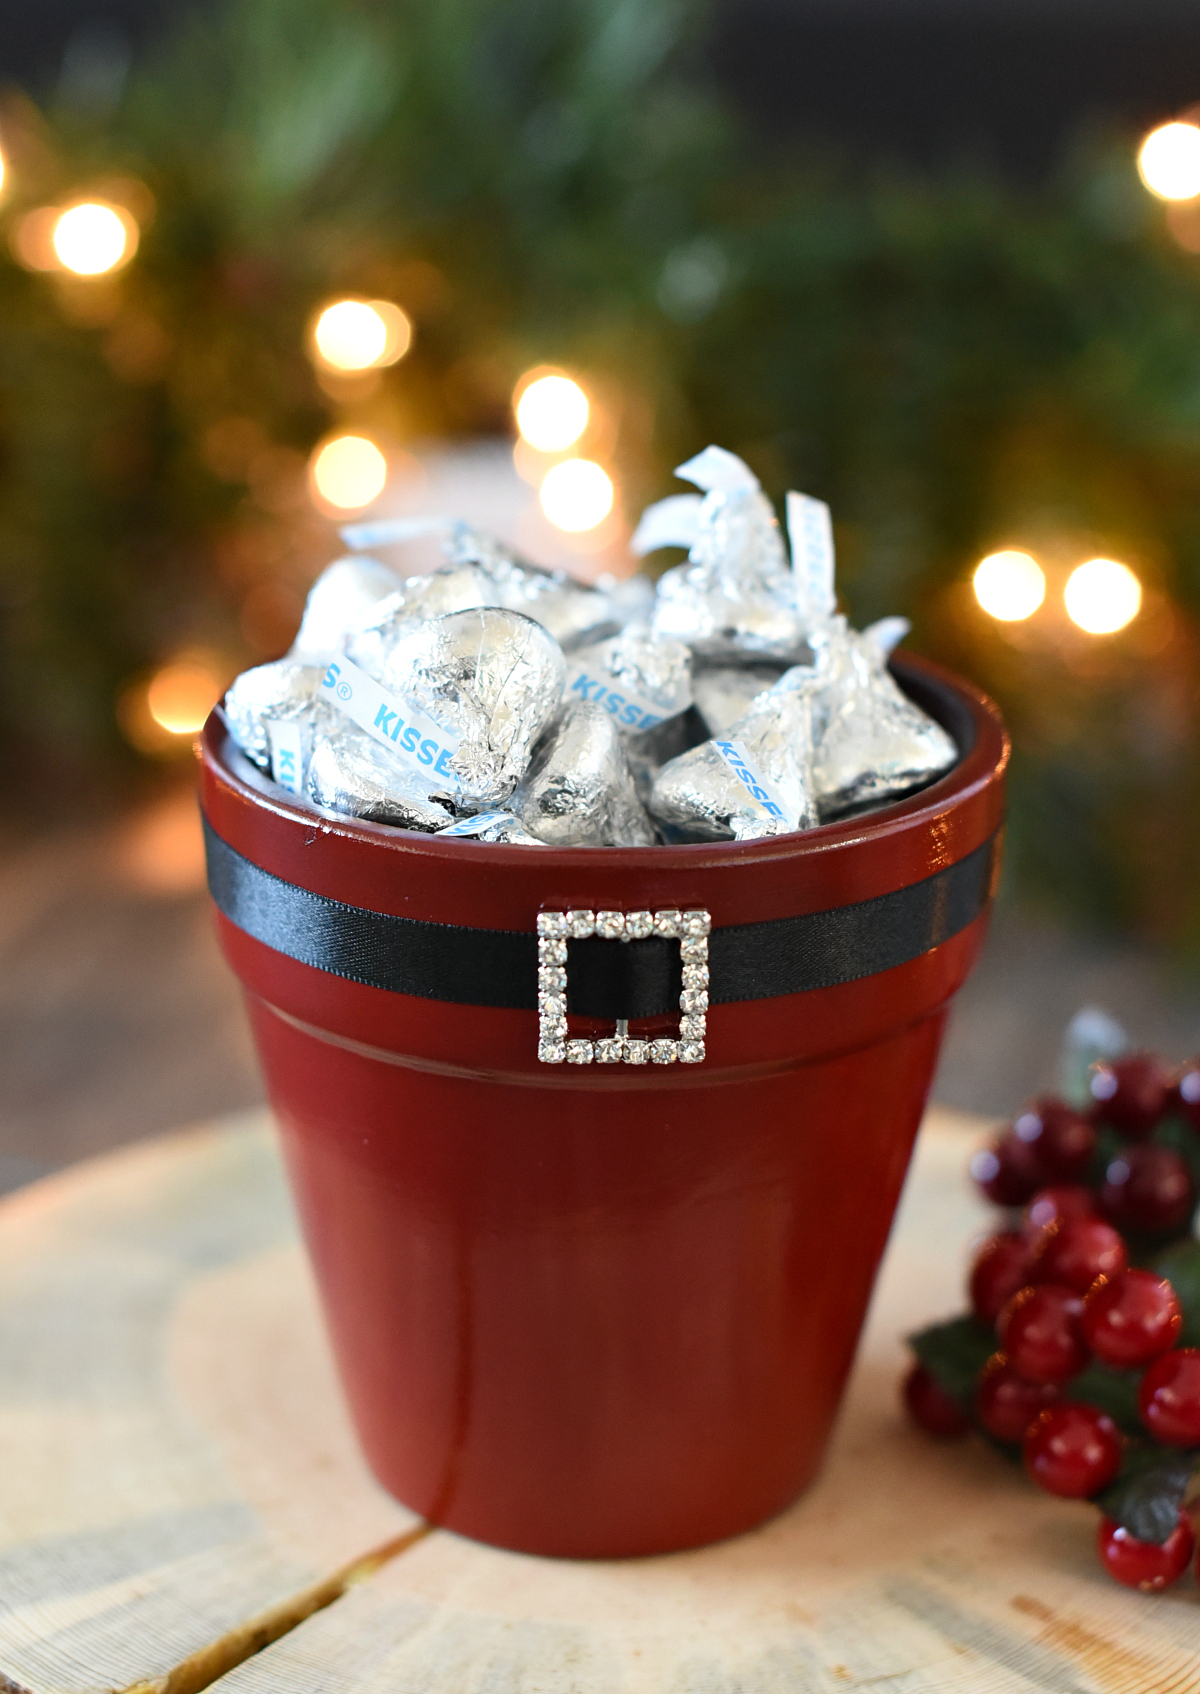 DIY santa pot for Christmas. Fun DIY gift idea for anyone. #DIYSantapots #christmasgifts